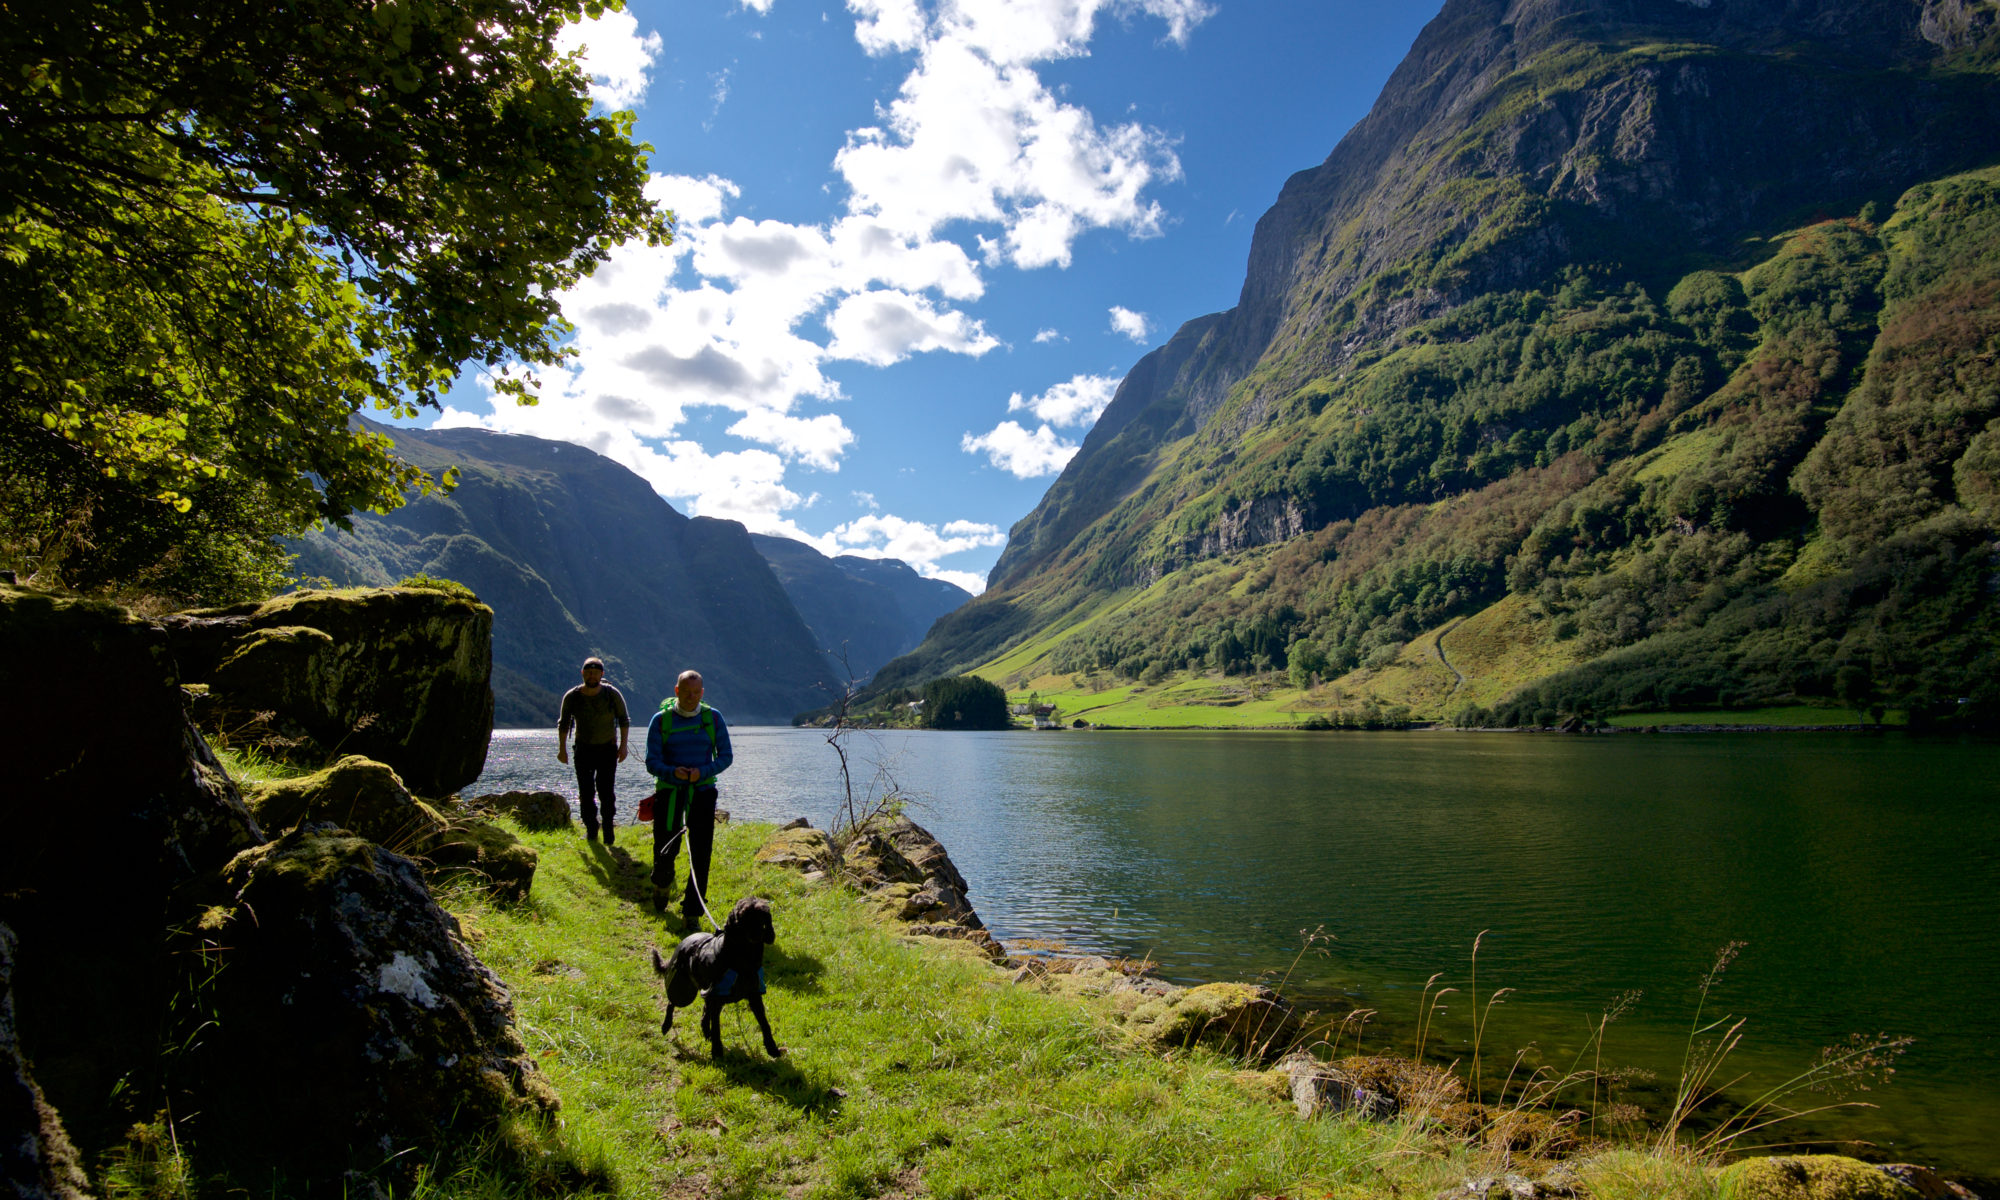 Walking along the Nærøyfjord